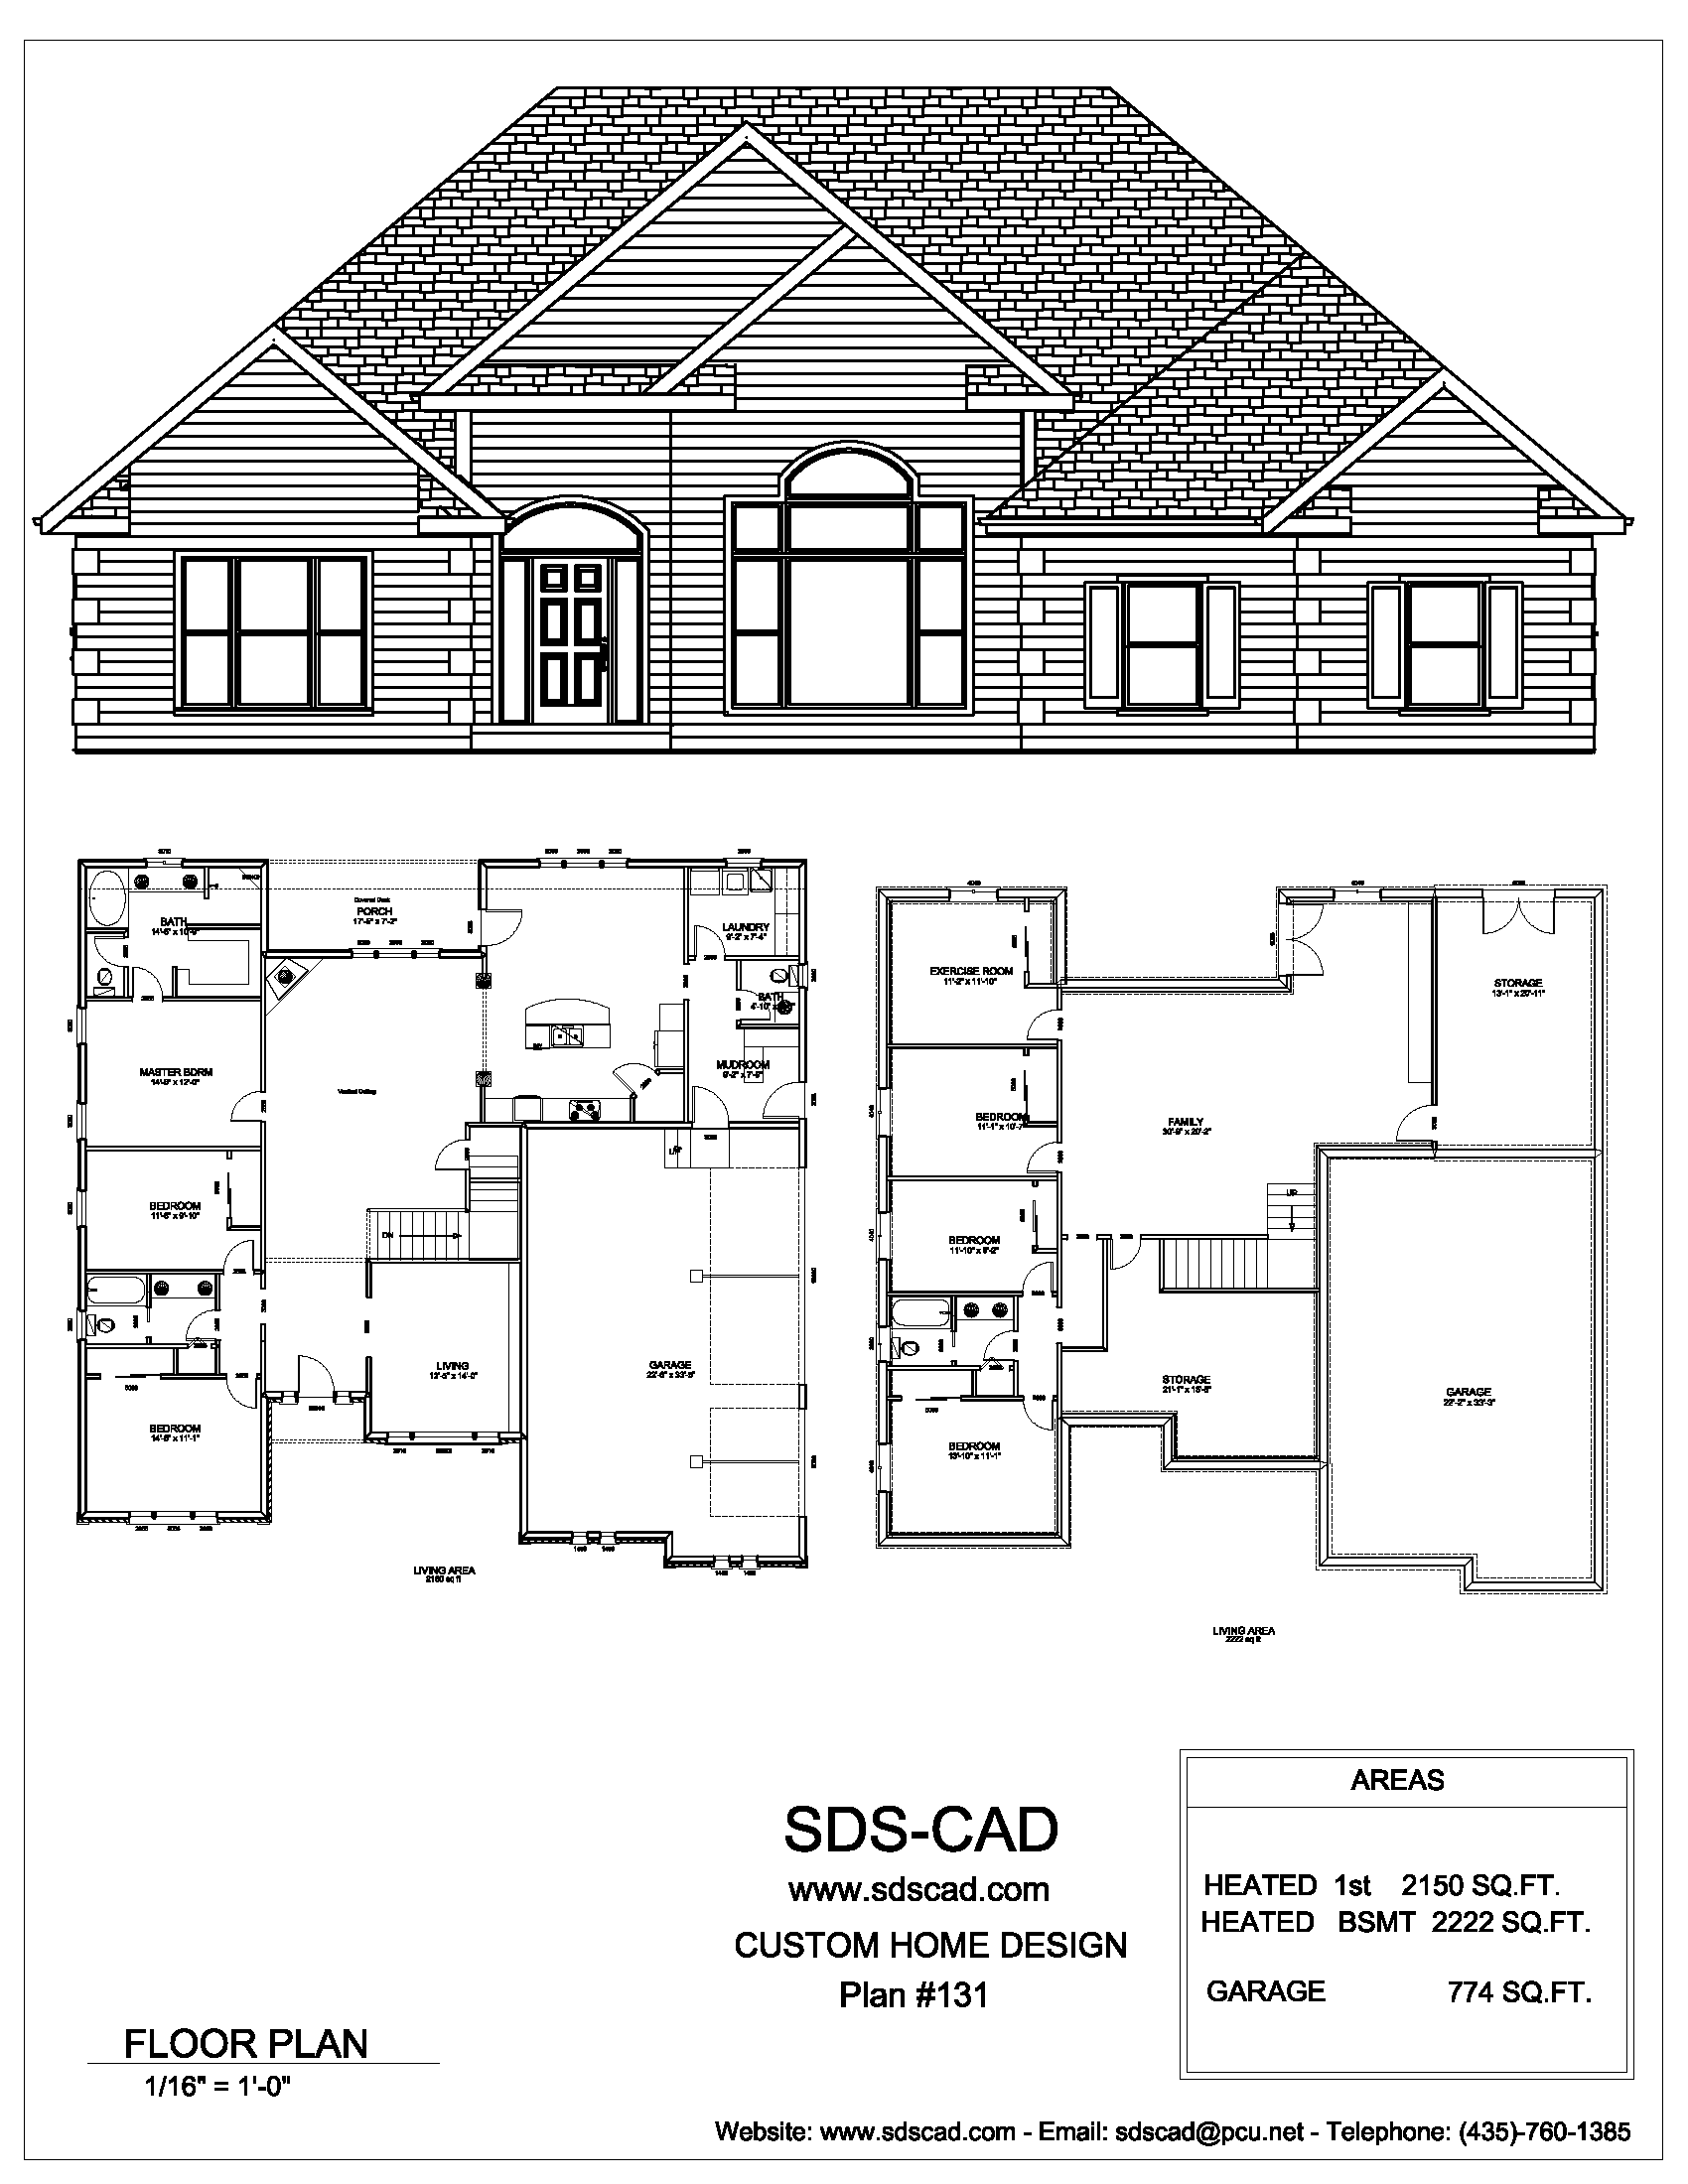 24 Blueprint Houses Images To Consider When You Lack Of Ideas House Plans